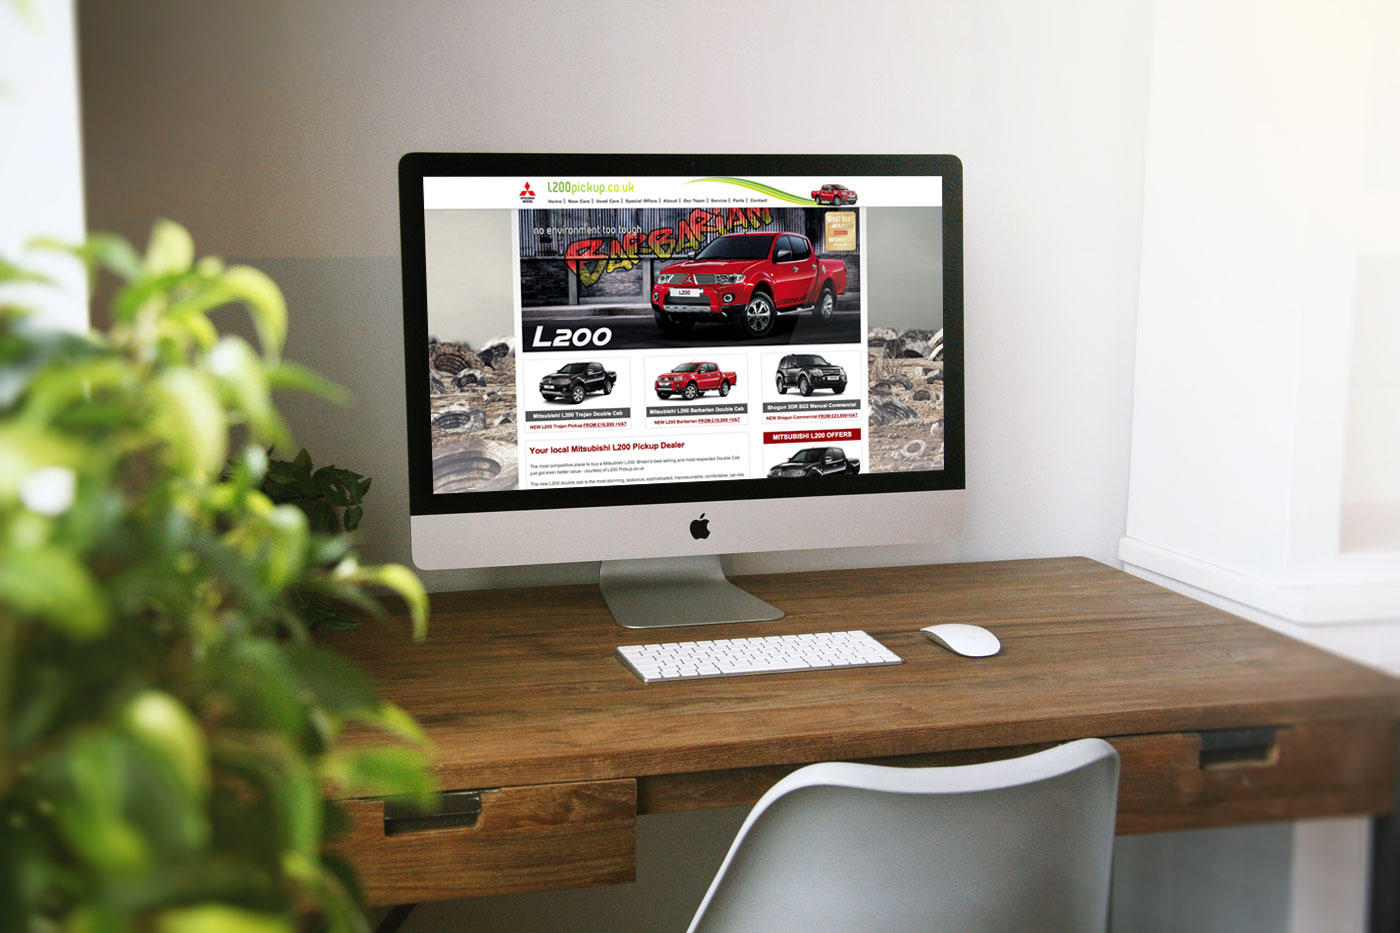 Browns Mitsubishi Advertising Campaign and Website Design